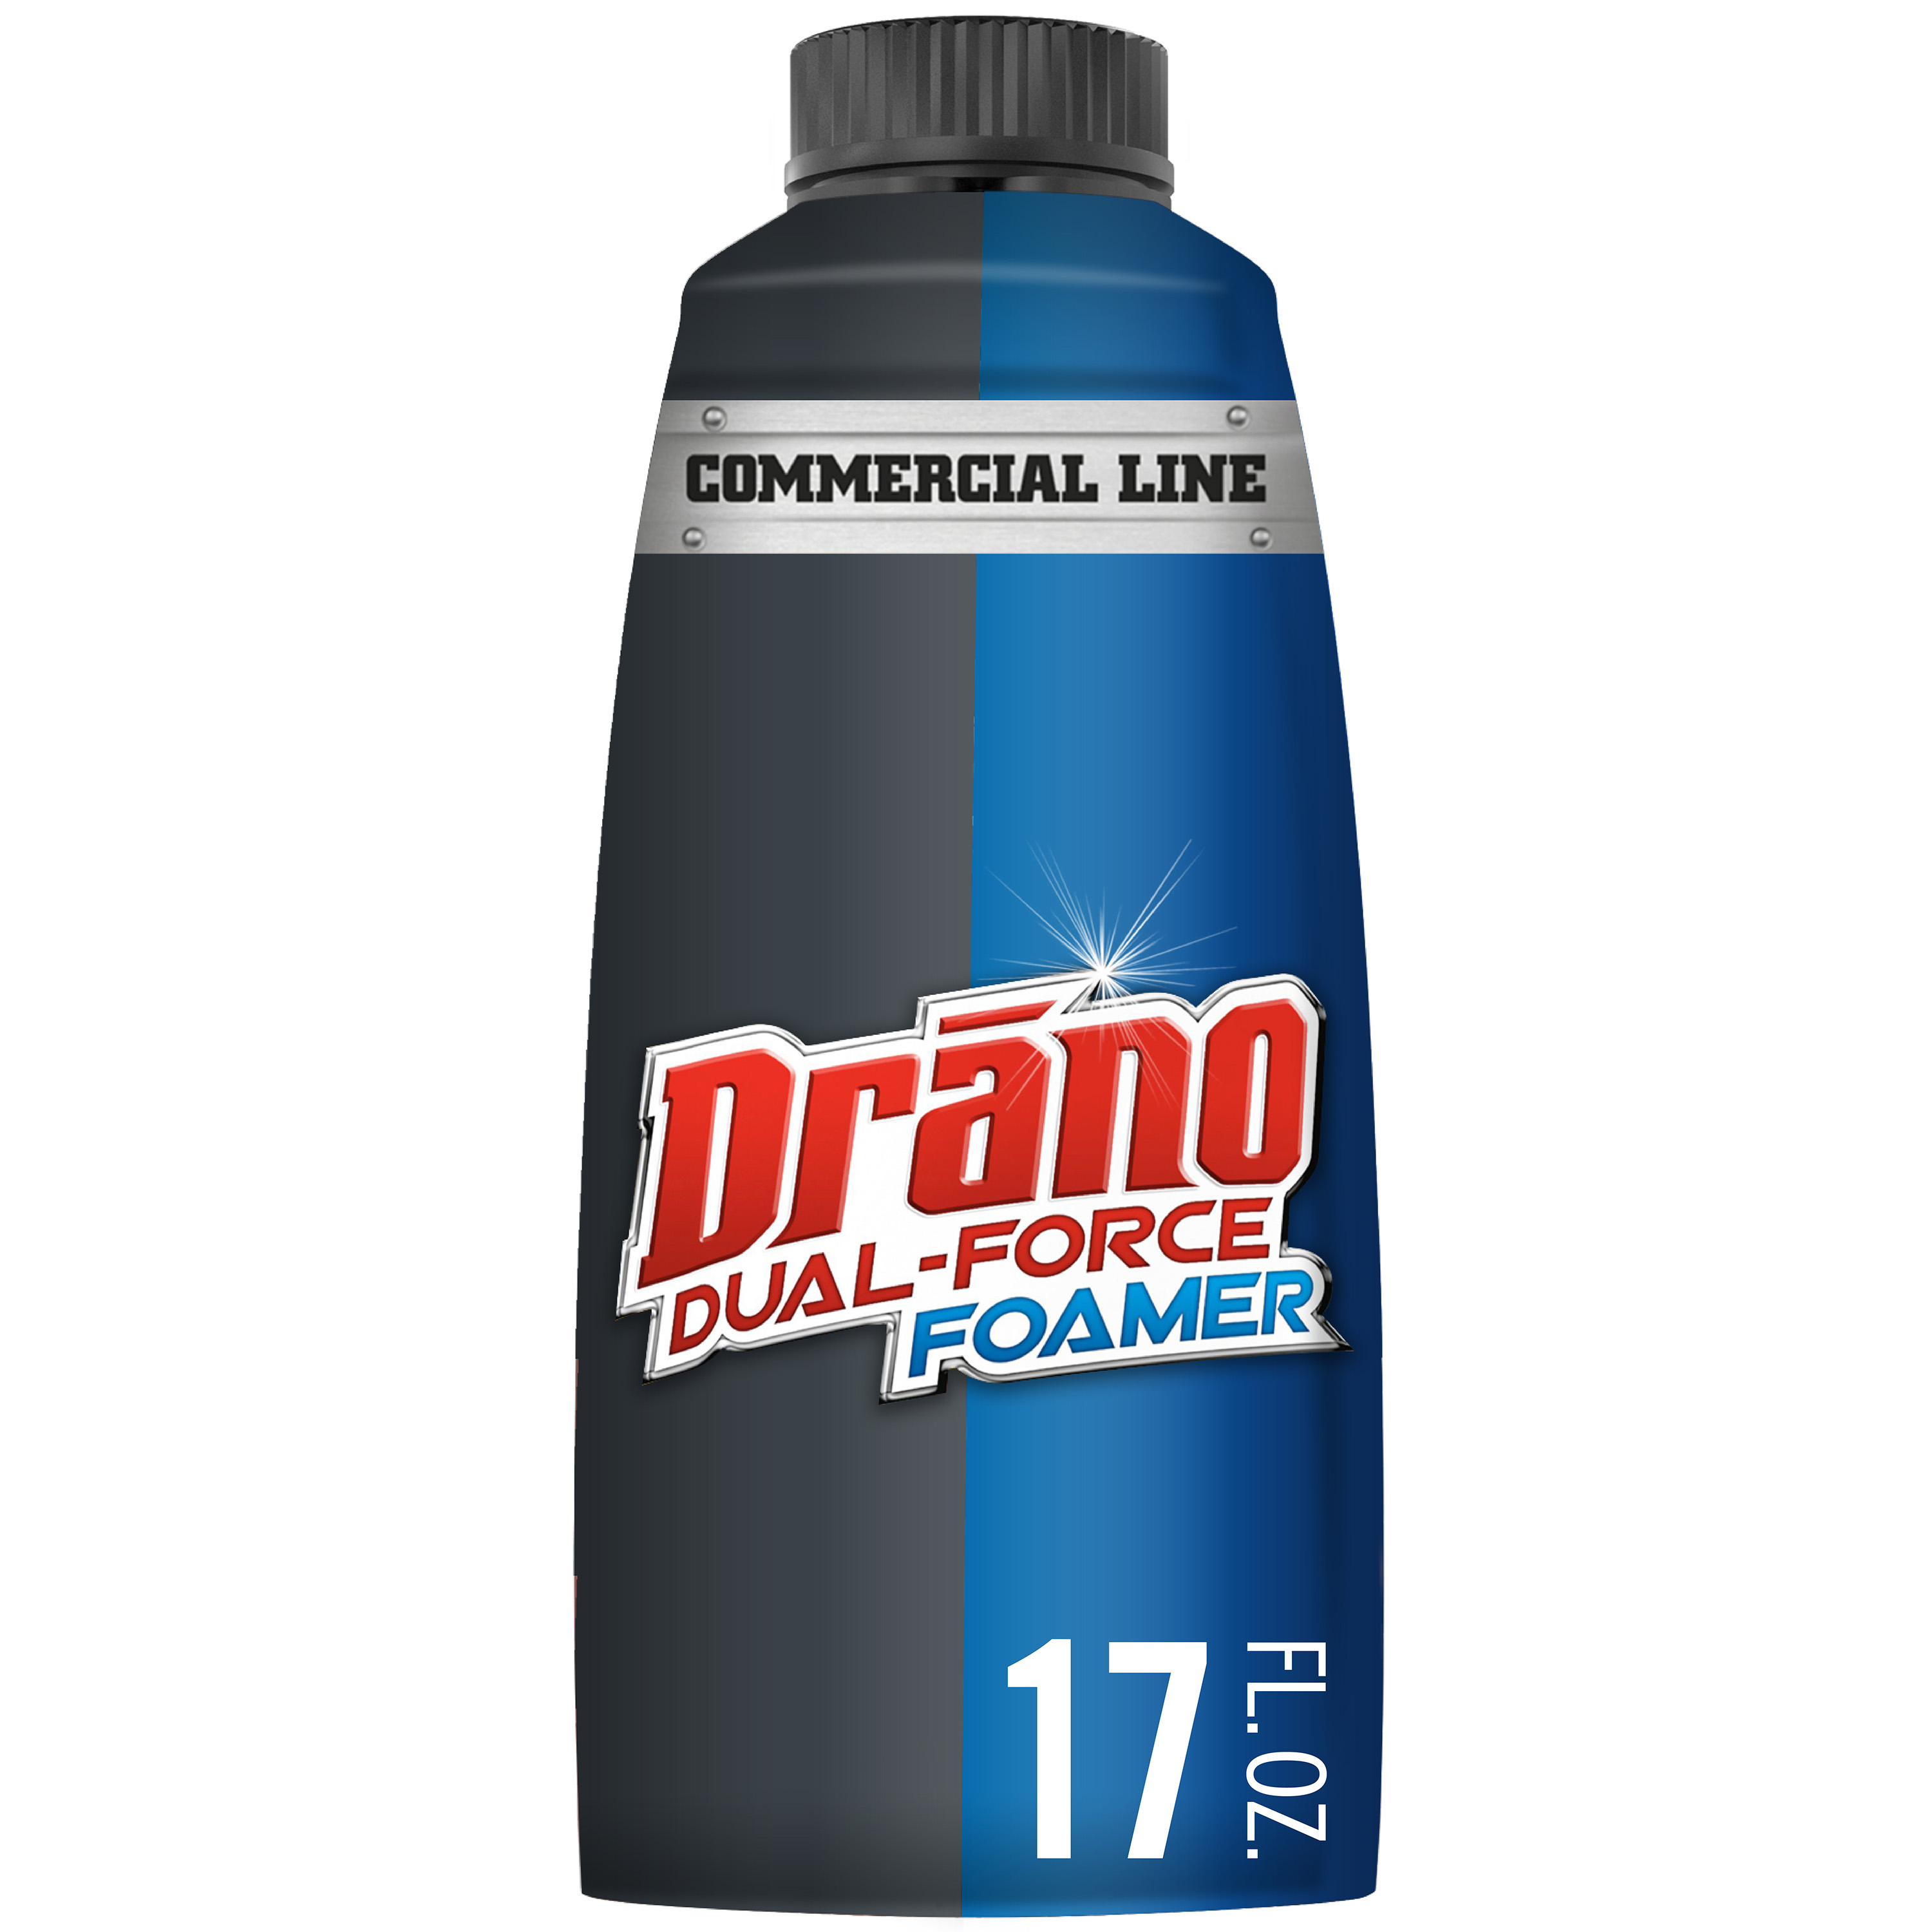 Drano Dual-Force Foamer Clog Remover, Commercial Line, 17 fl oz